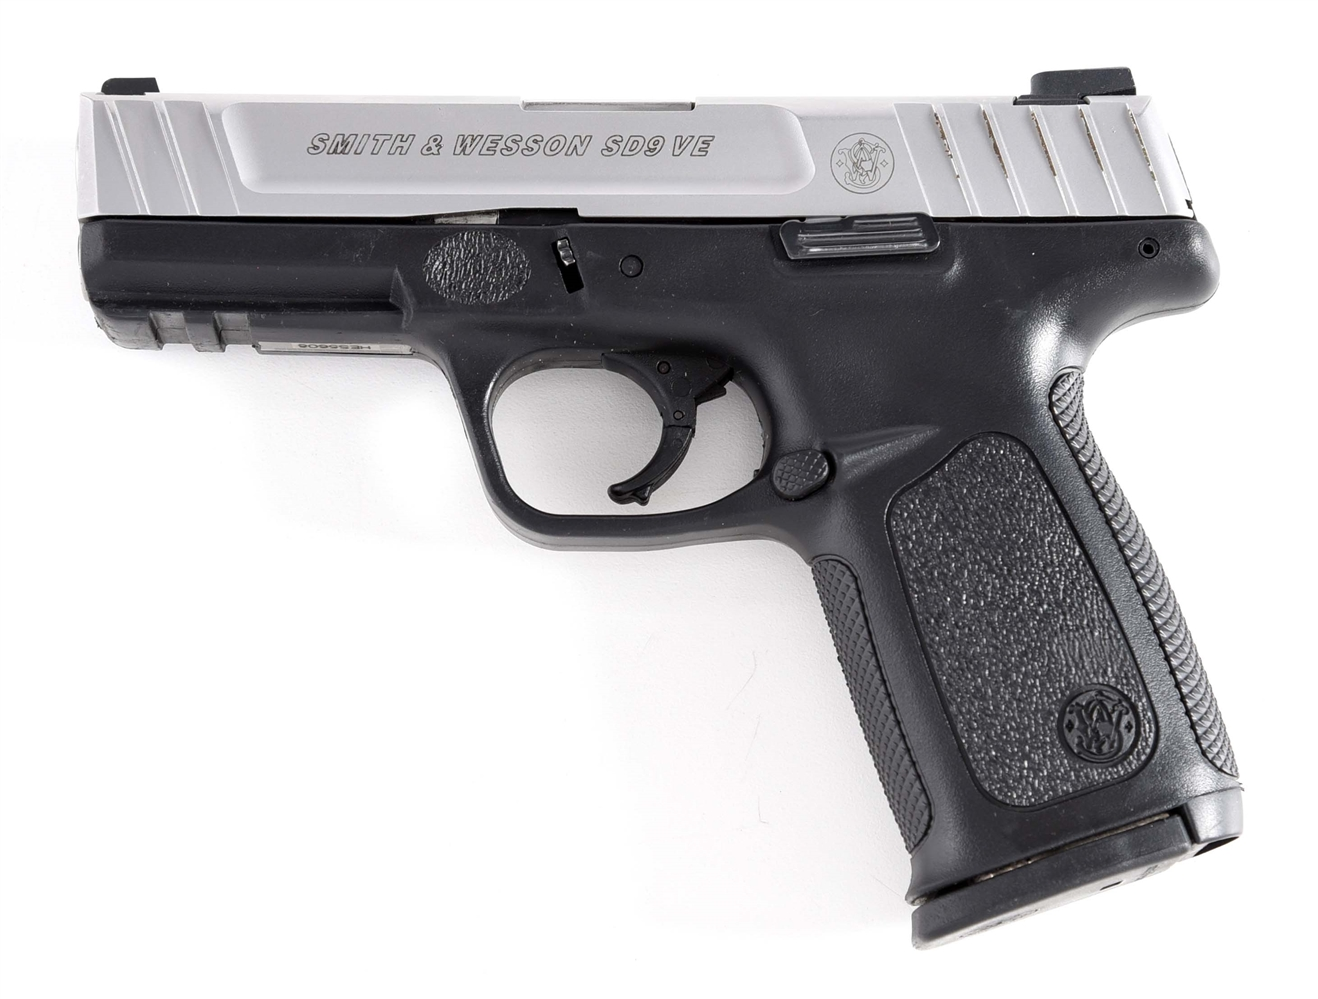 (M) SMITH & WESSON MODEL SD9VE SEMI-AUTOMATIC PISTOL.